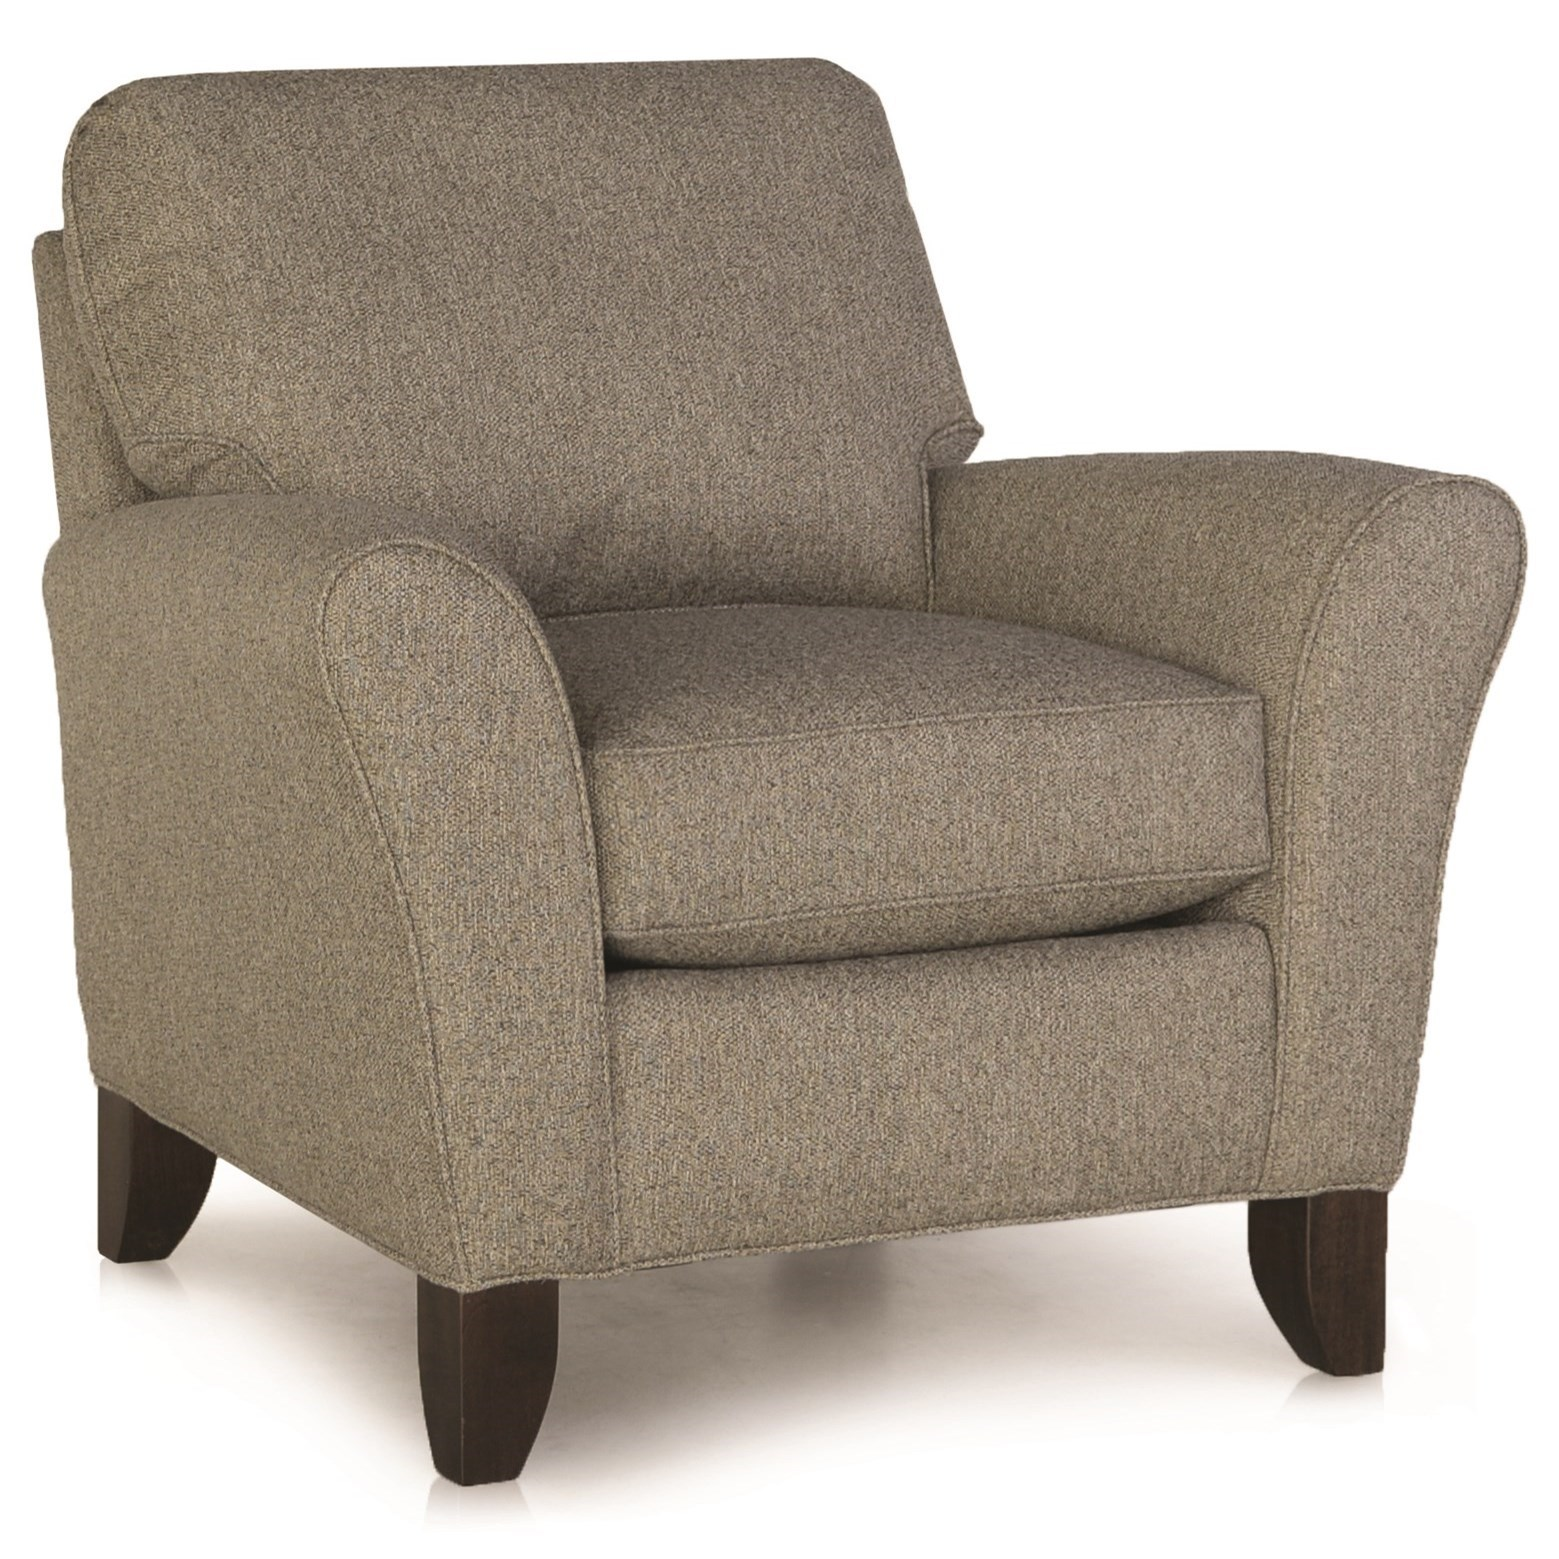 344 Upholstered Chair by Smith Brothers at Pilgrim Furniture City